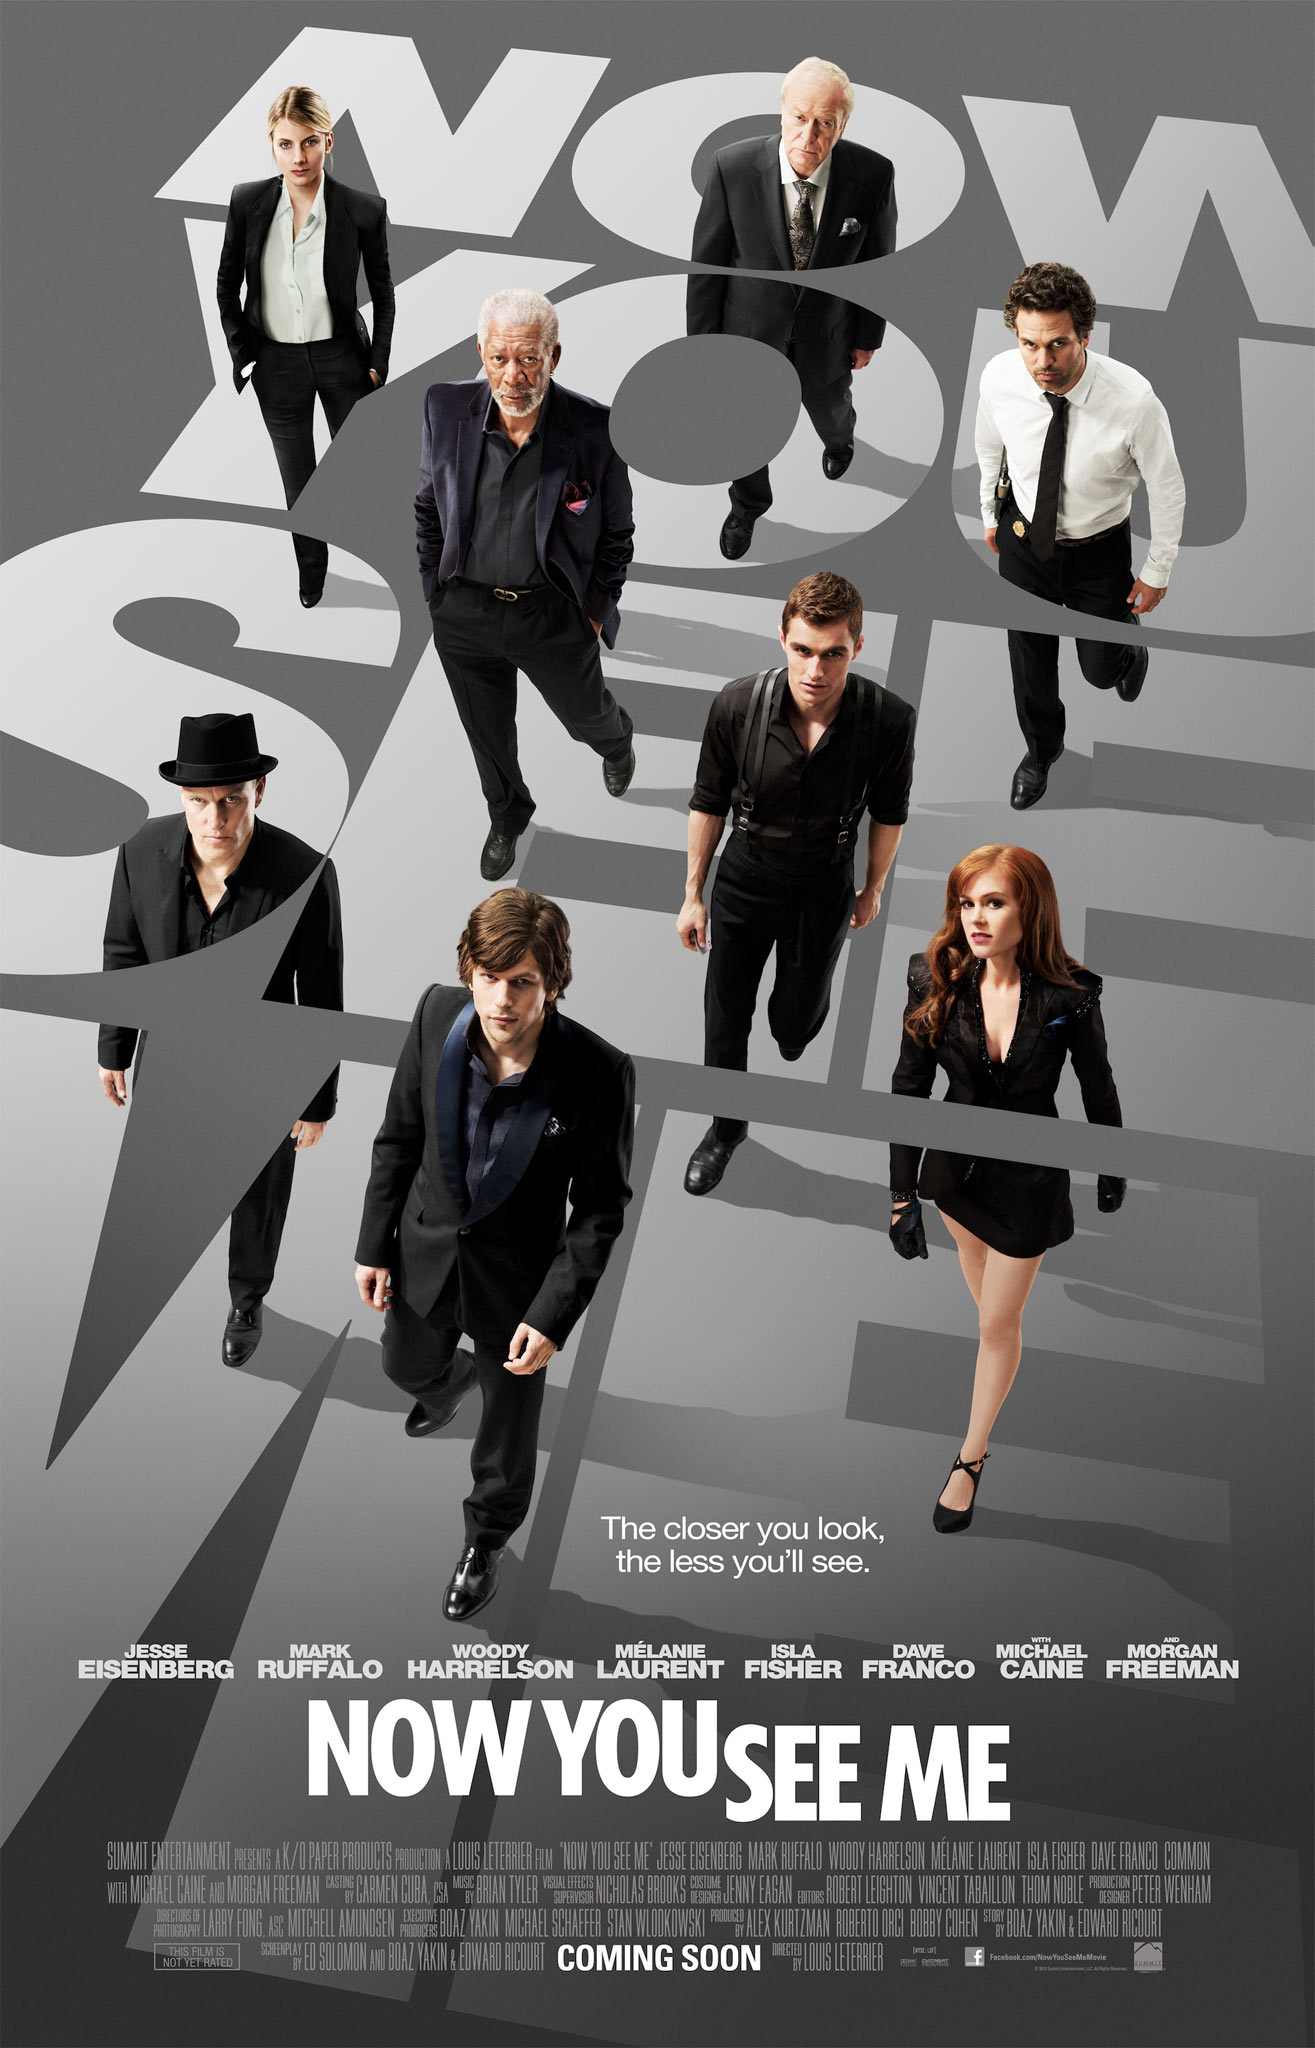 Now You See Me - Movie Poster #1 (Original)